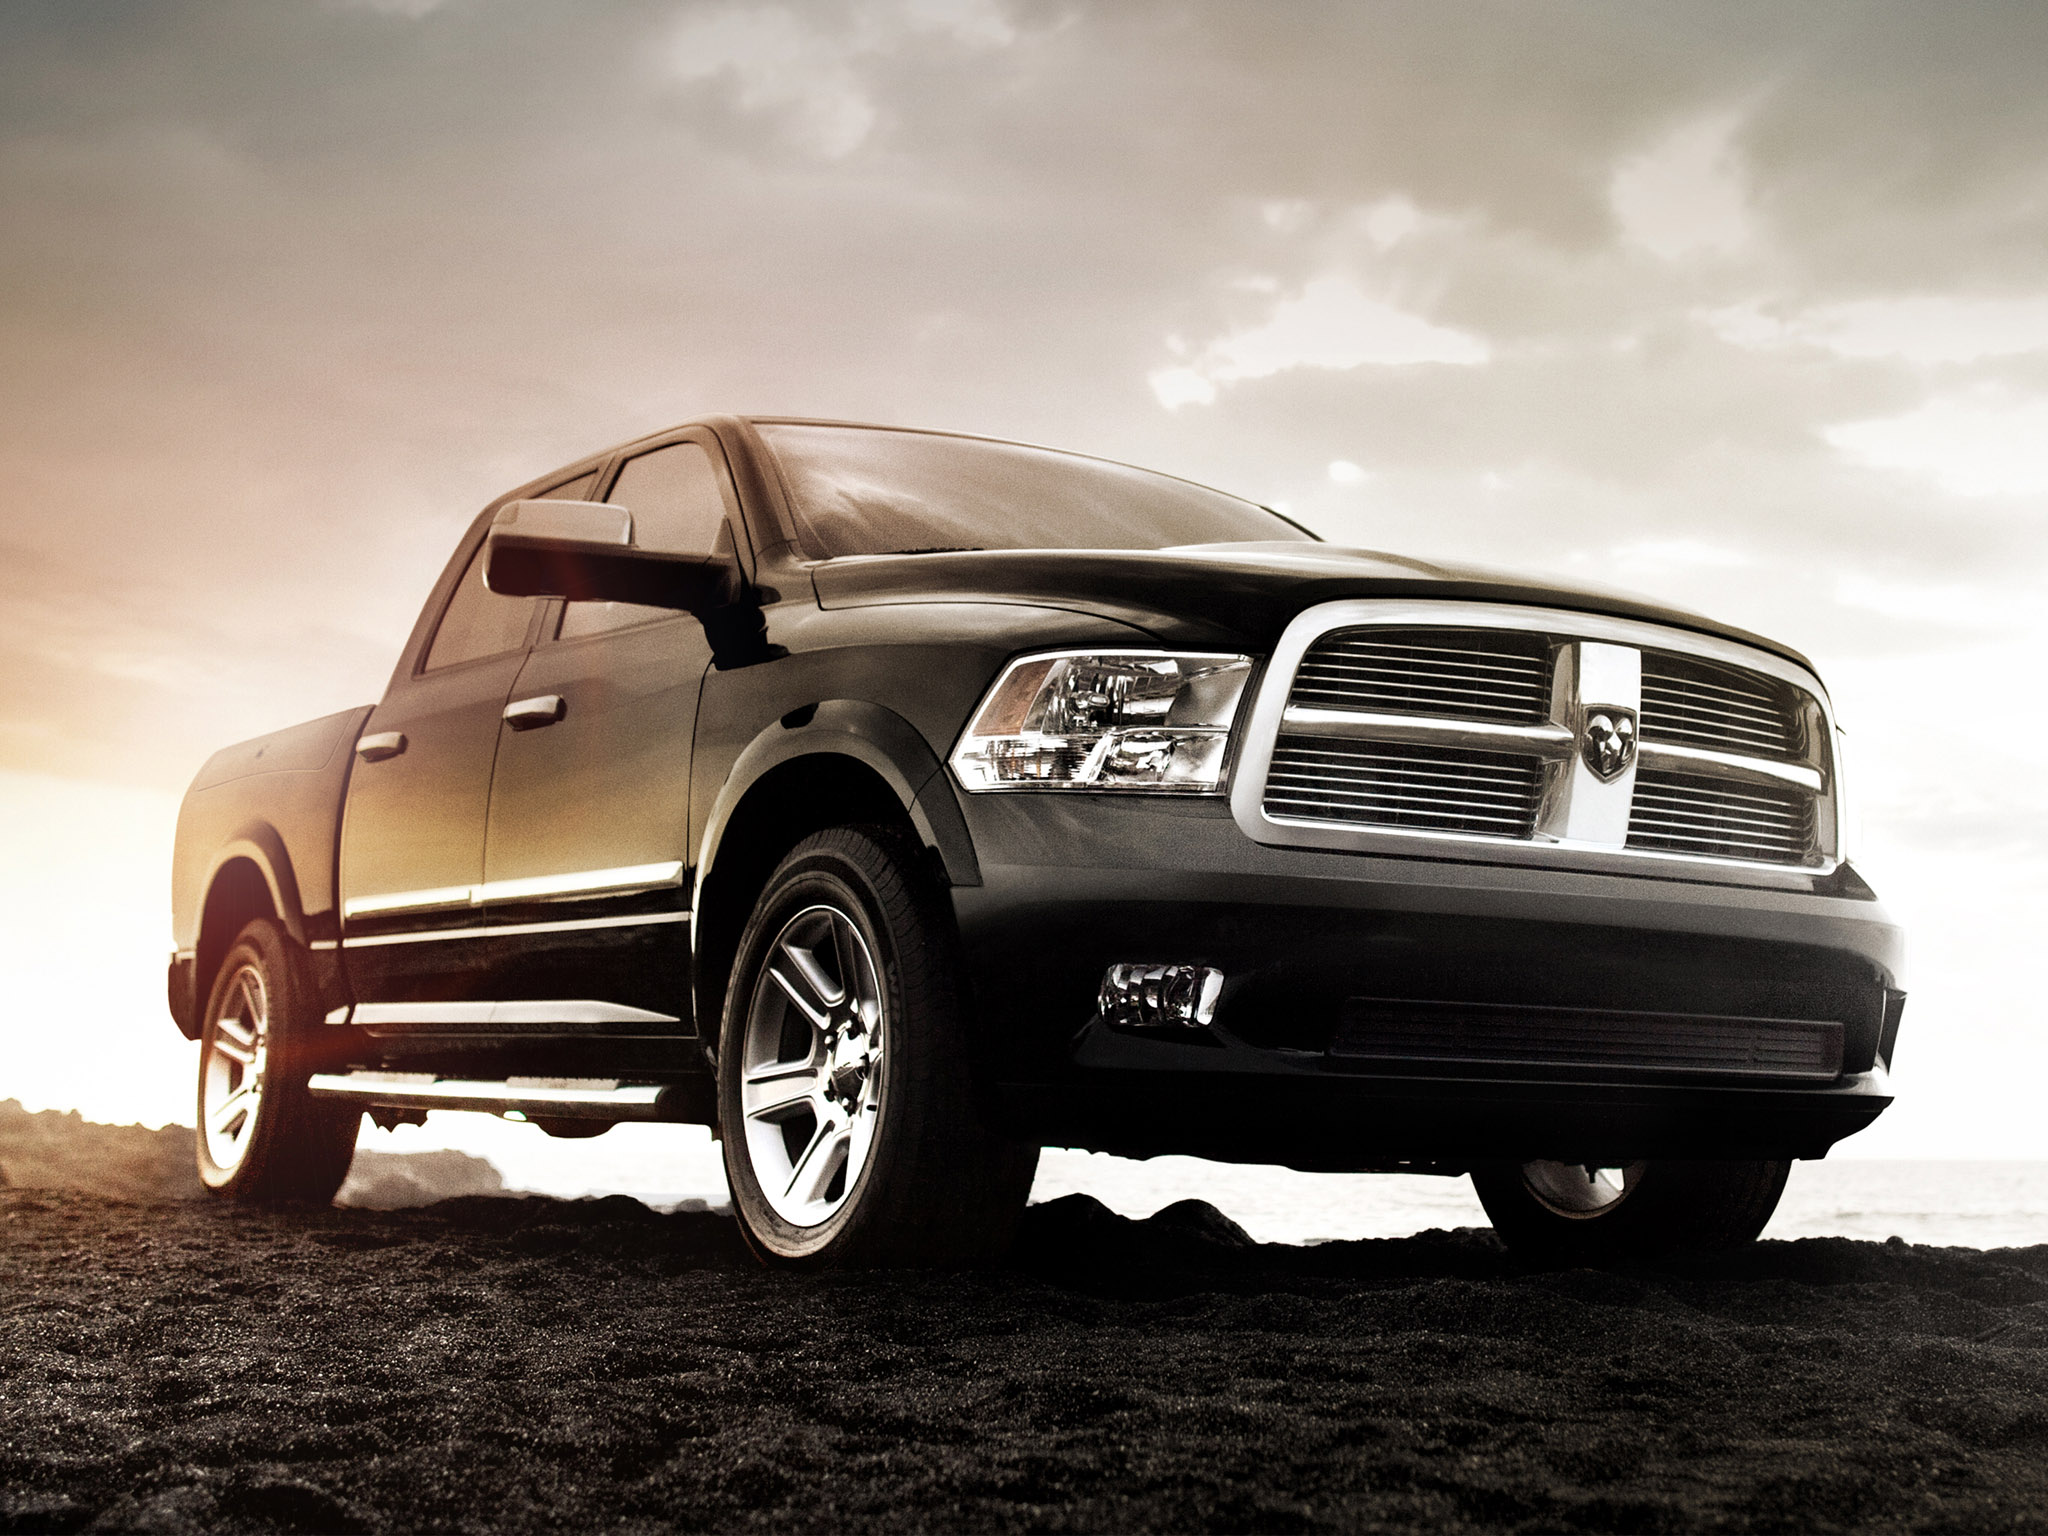 dodge ram 1500 laramie limited 2012 dodge ram 1500 laramie limited. Black Bedroom Furniture Sets. Home Design Ideas